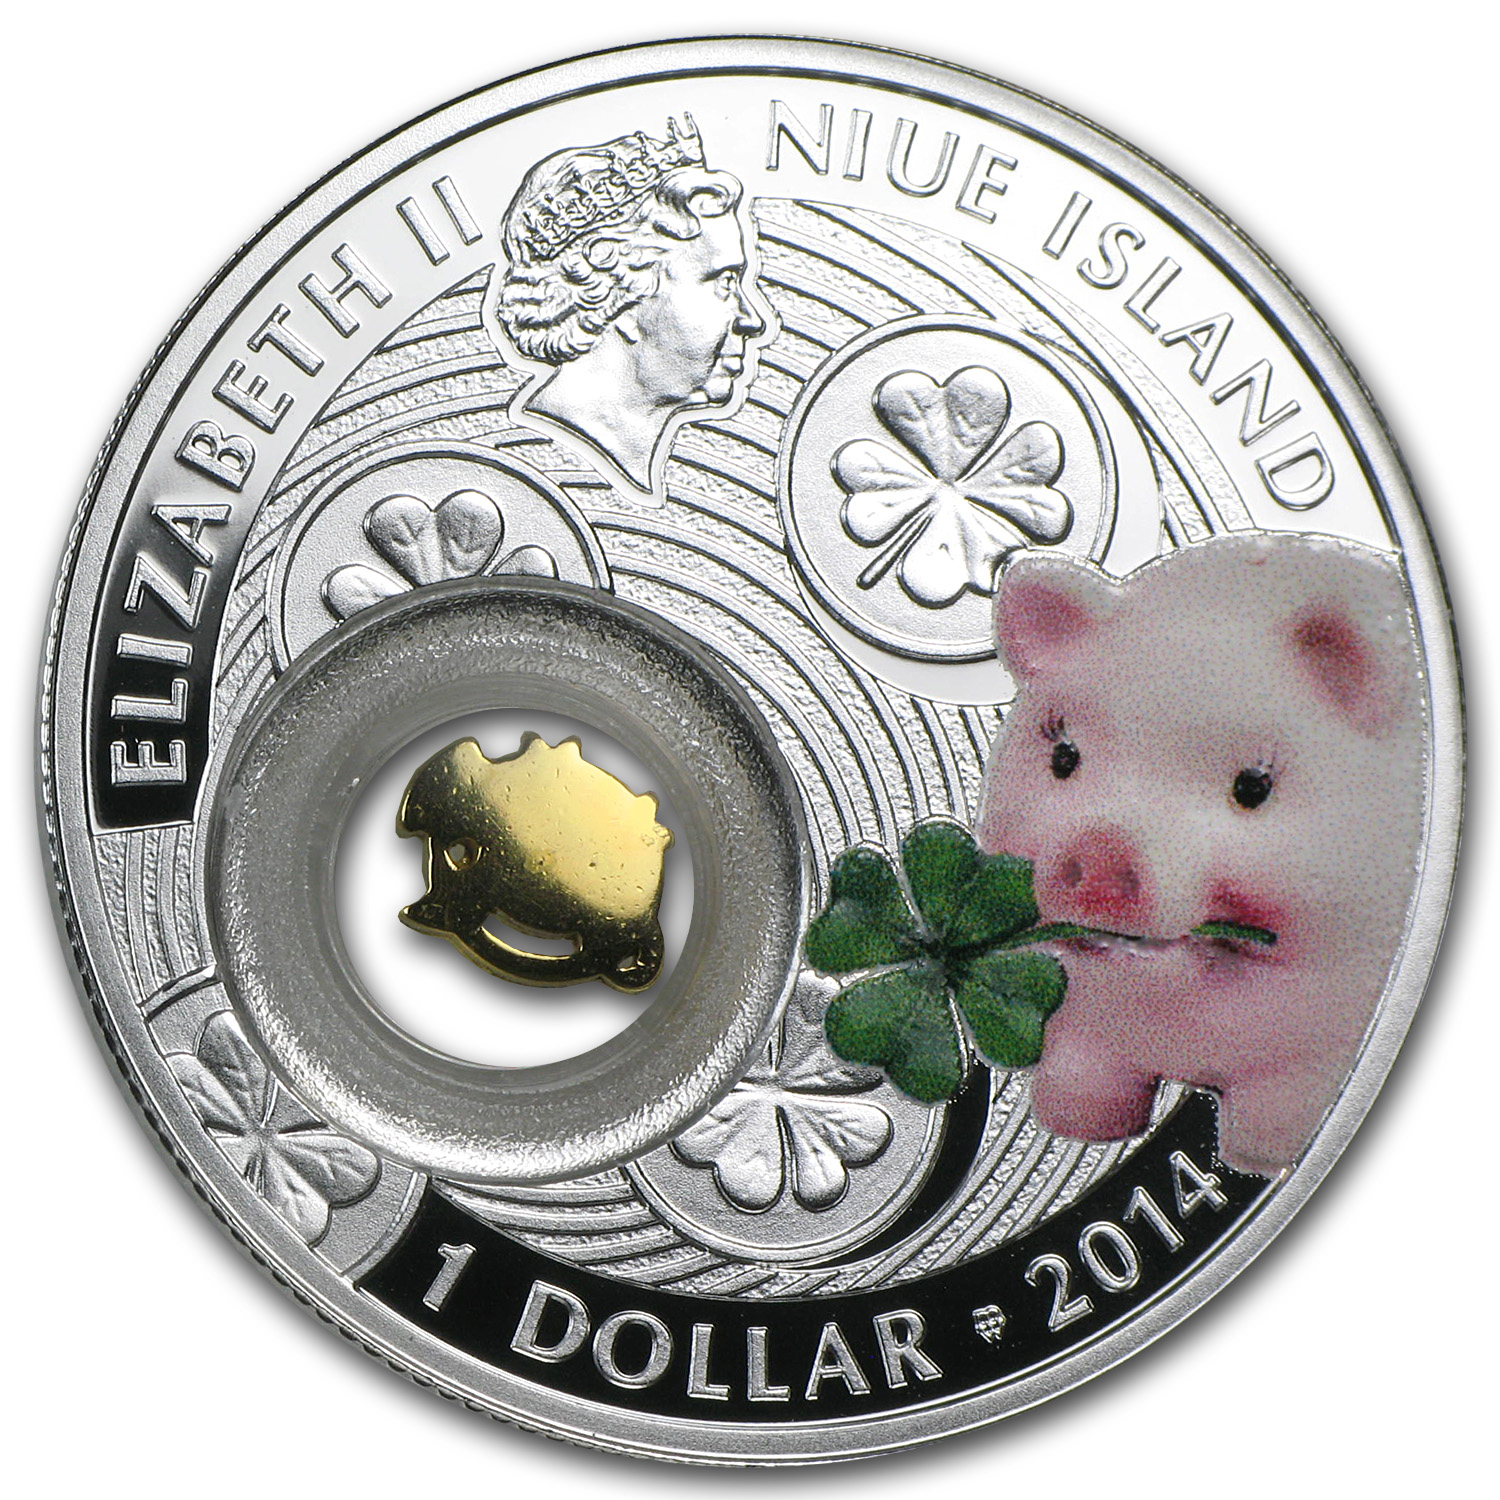 Niue 2014 Proof Silver $1 Good Luck Series - Piggy